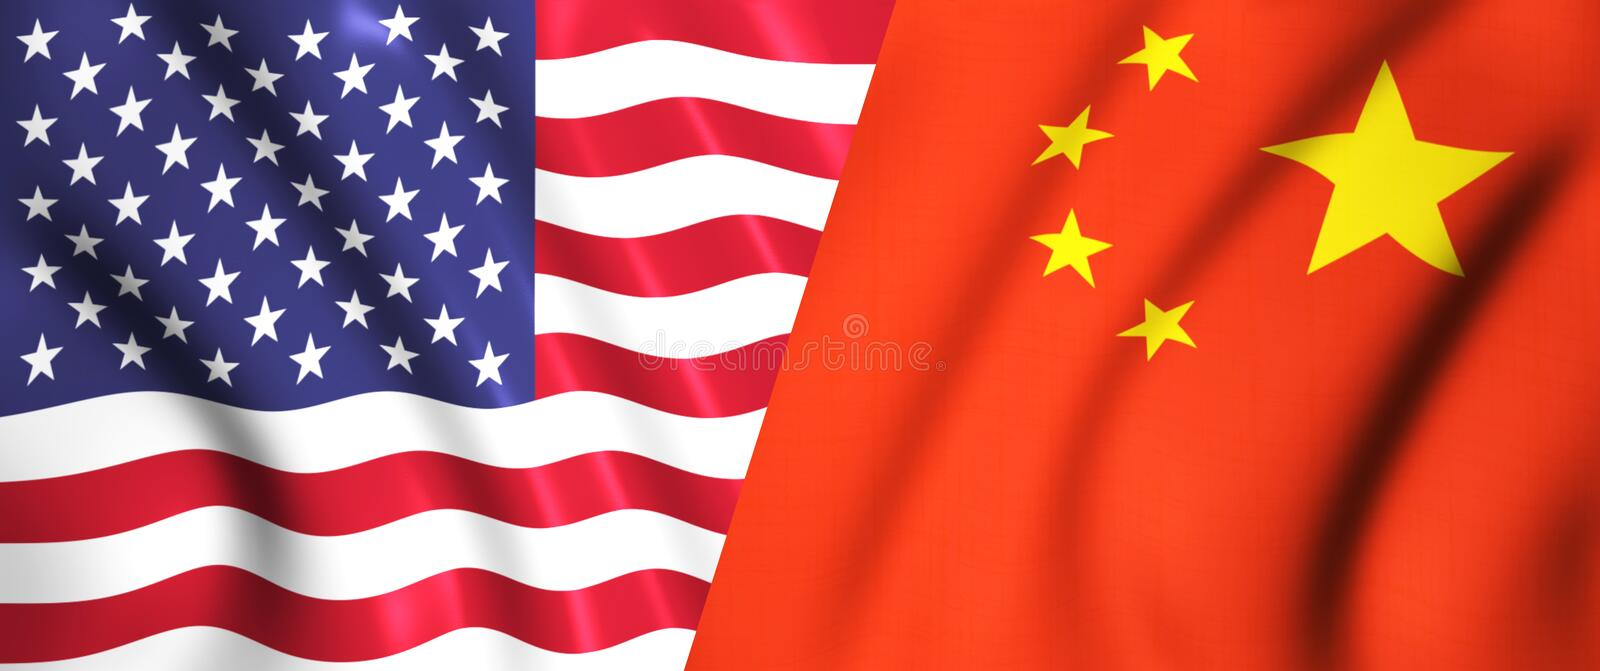 Us flag and chinese flag waving in the wind royalty free illustration